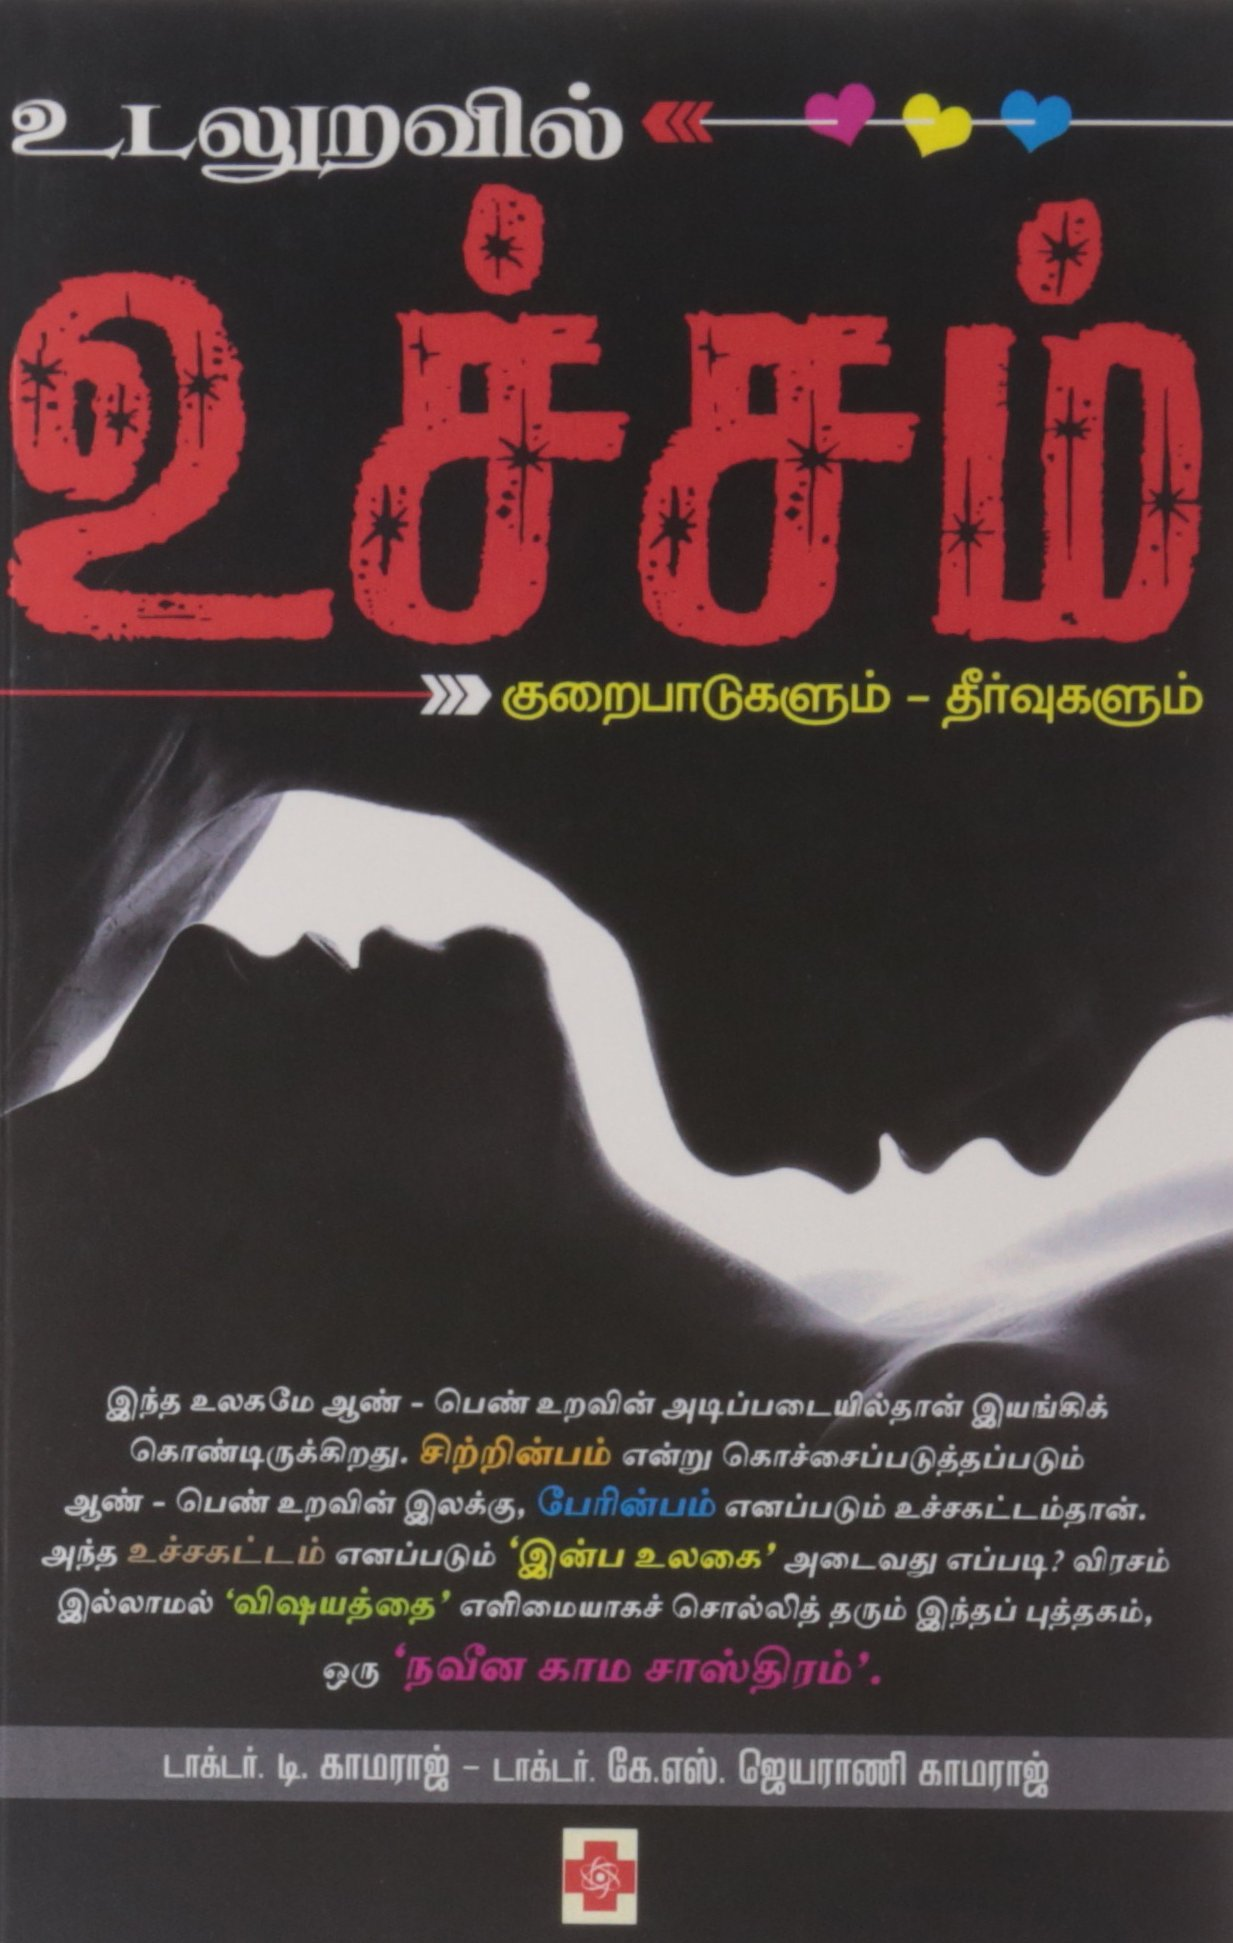 KAMASUTRA BOOK IN TAMIL LANGUAGE EPUB